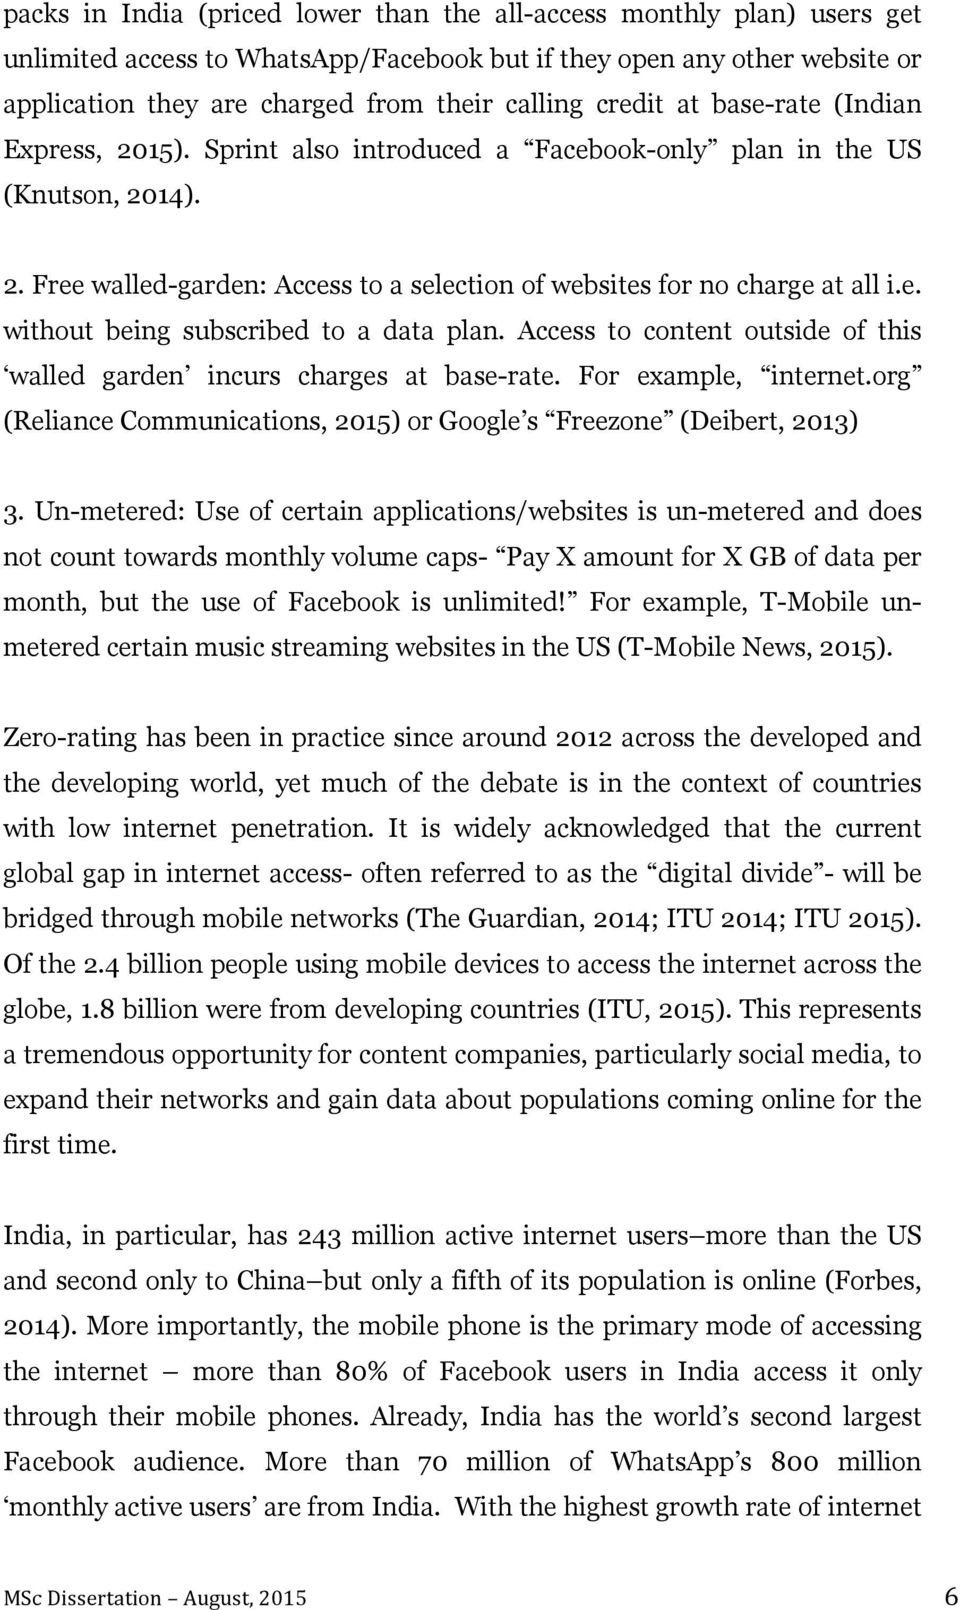 Access to content outside of this walled garden incurs charges at base-rate. For example, internet.org (Reliance Communications, 2015) or Google s Freezone (Deibert, 2013) 3.